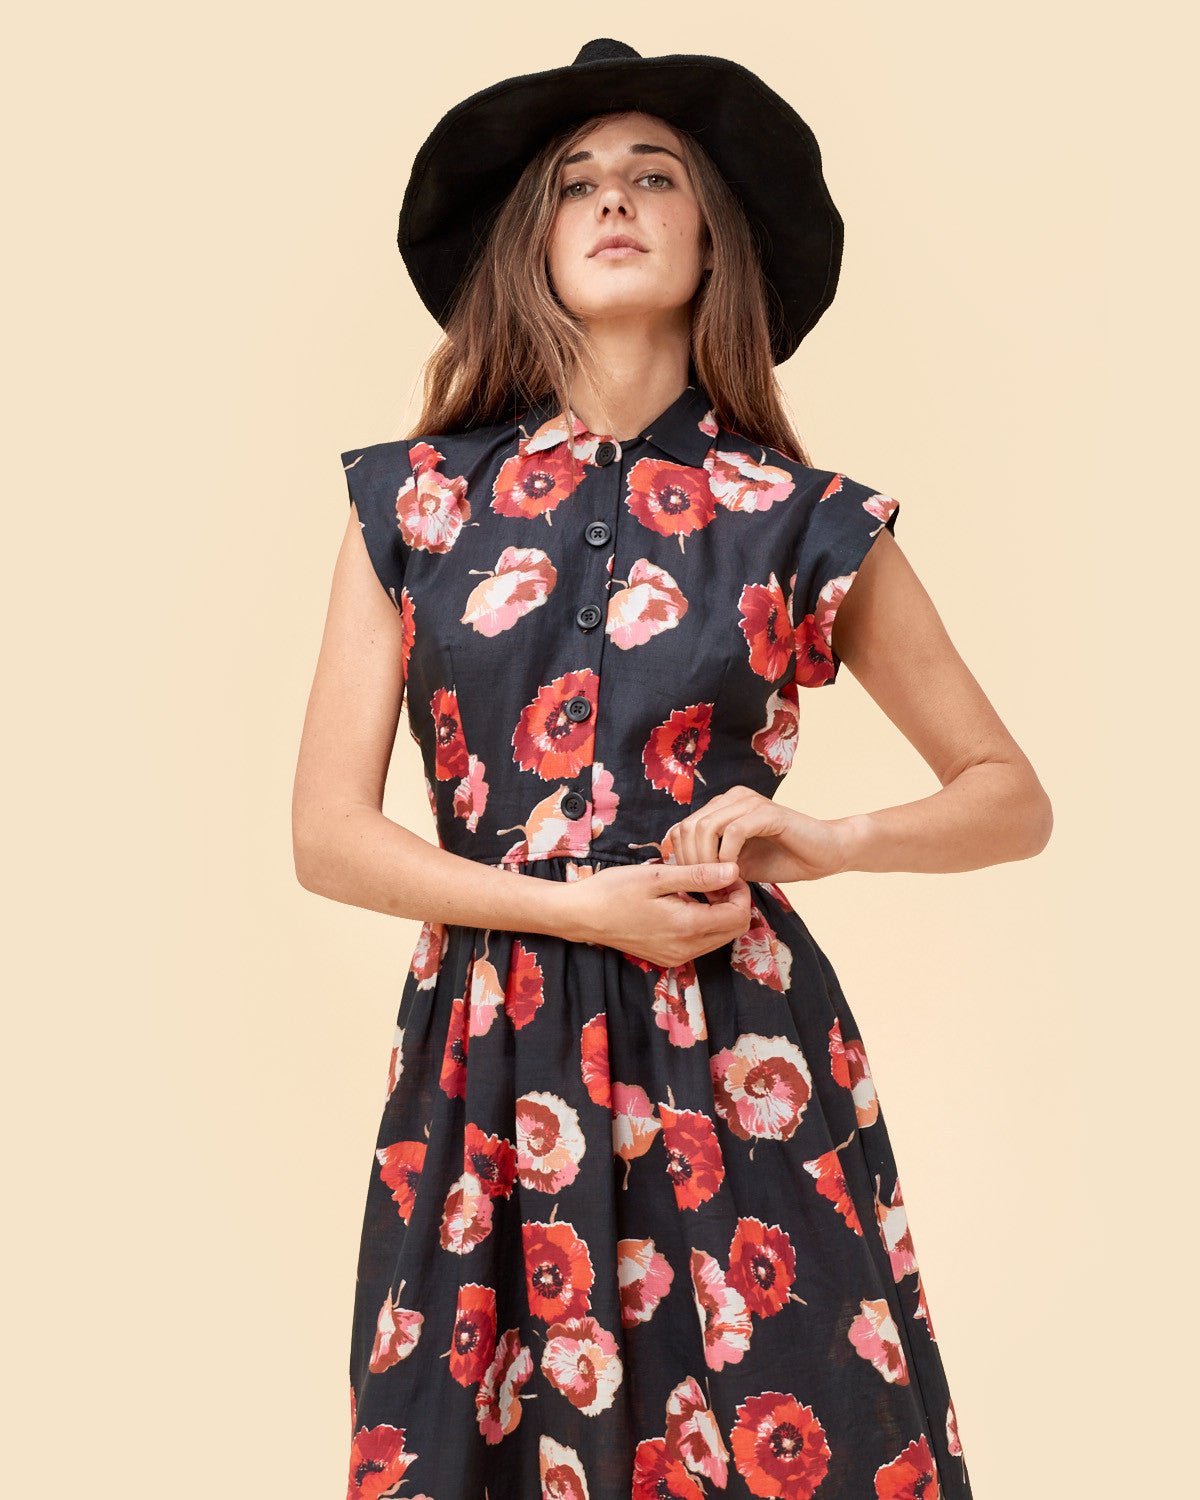 The Piper Dress | Black and Red Floral